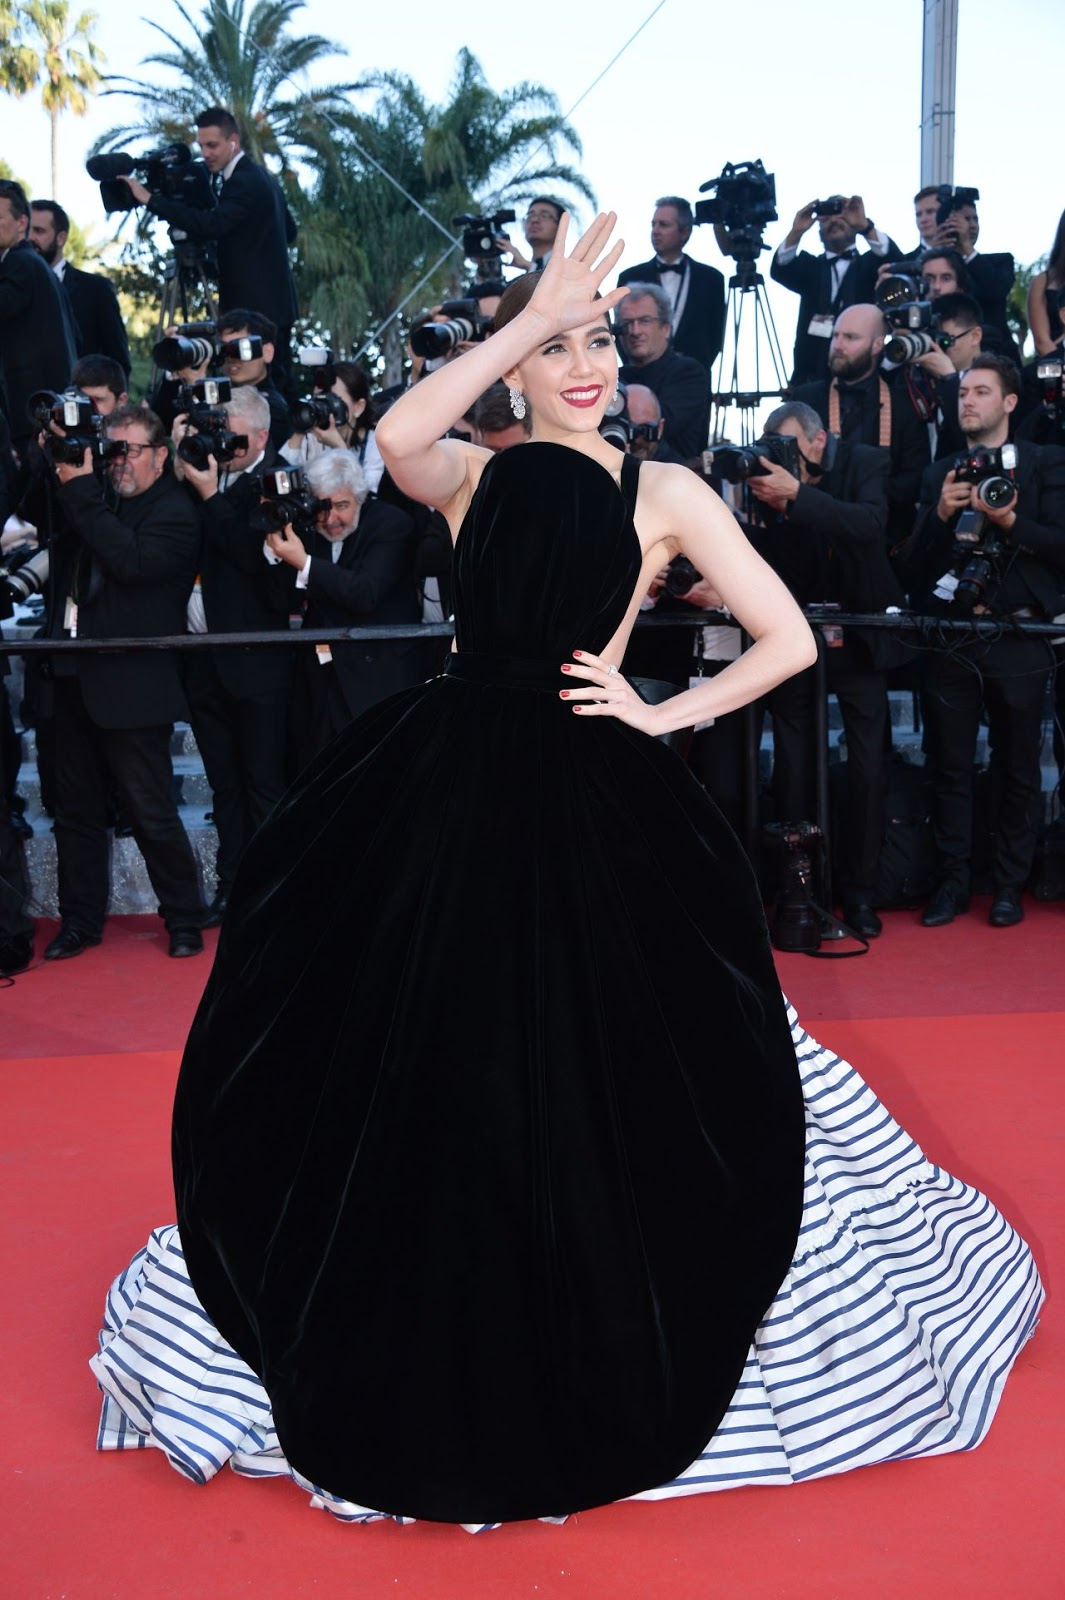 Full HQ Photos of 'Thai Actress' Araya A. Hargate attends Mal De Pierres Premiere At Cannes Film Festival 2016